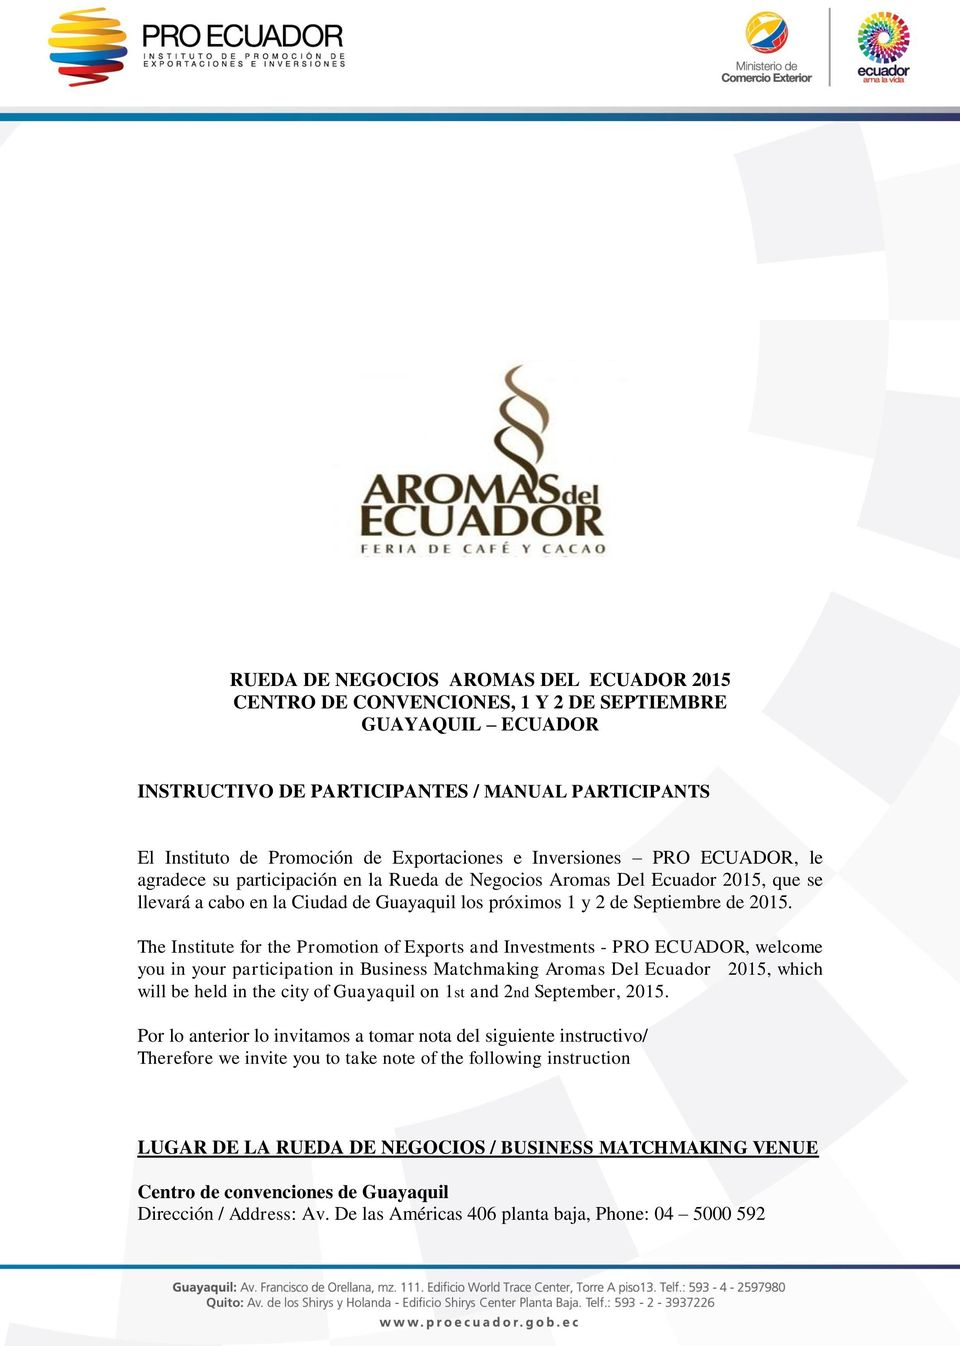 The Institute for the Promotion of Exports and Investments - PRO ECUADOR, welcome you in your participation in Business Matchmaking Aromas Del Ecuador 2015, which will be held in the city of